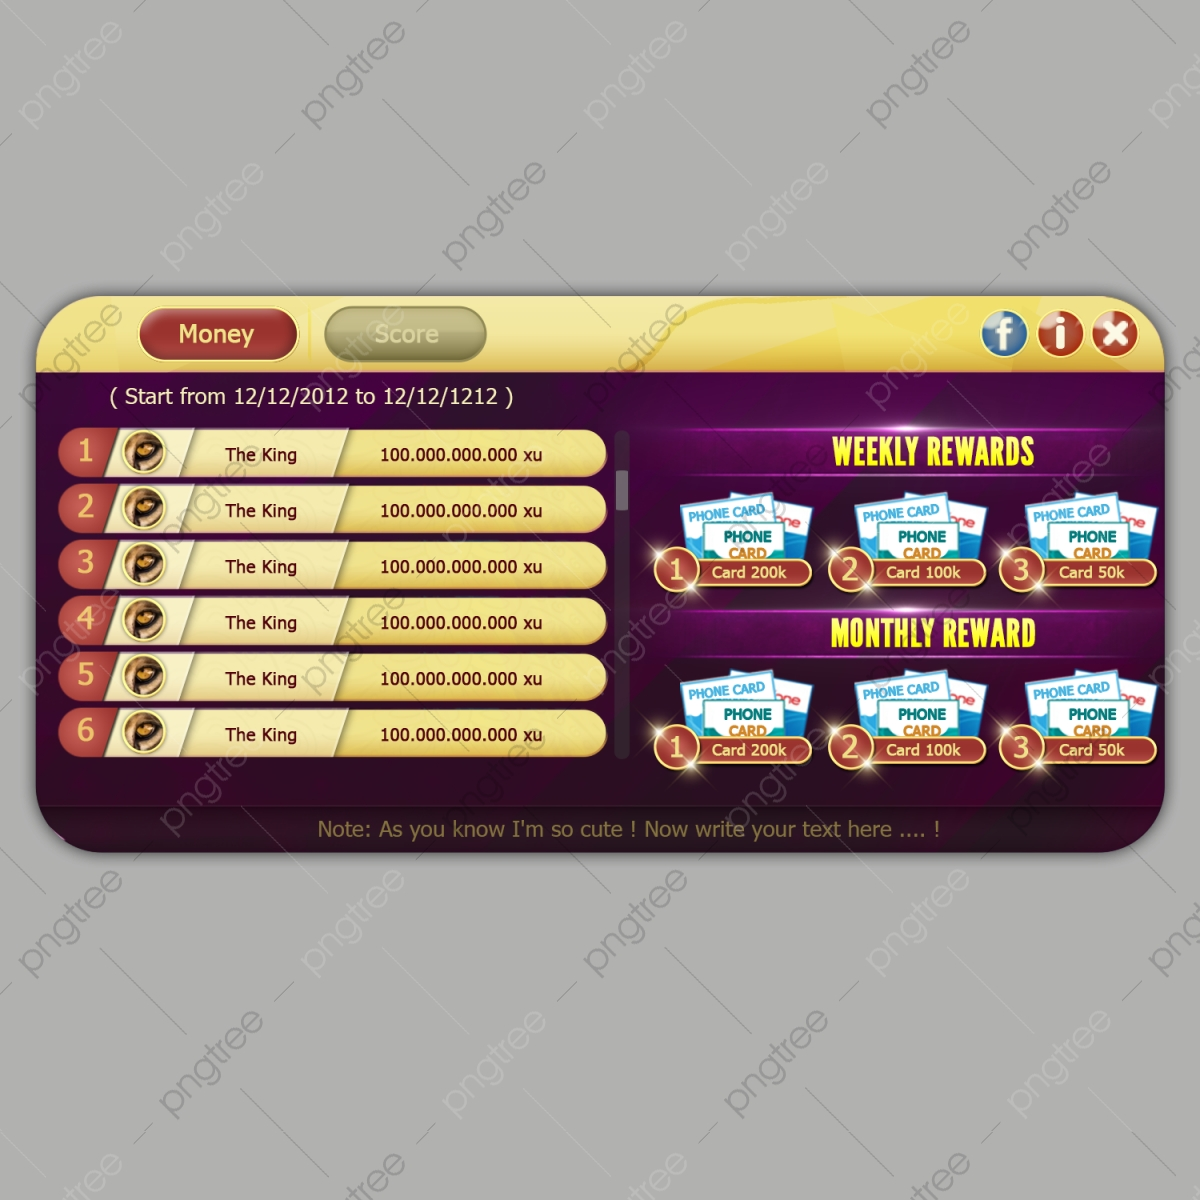 A Leader Board Game Popup With Rewards For Casino Or Casual Or